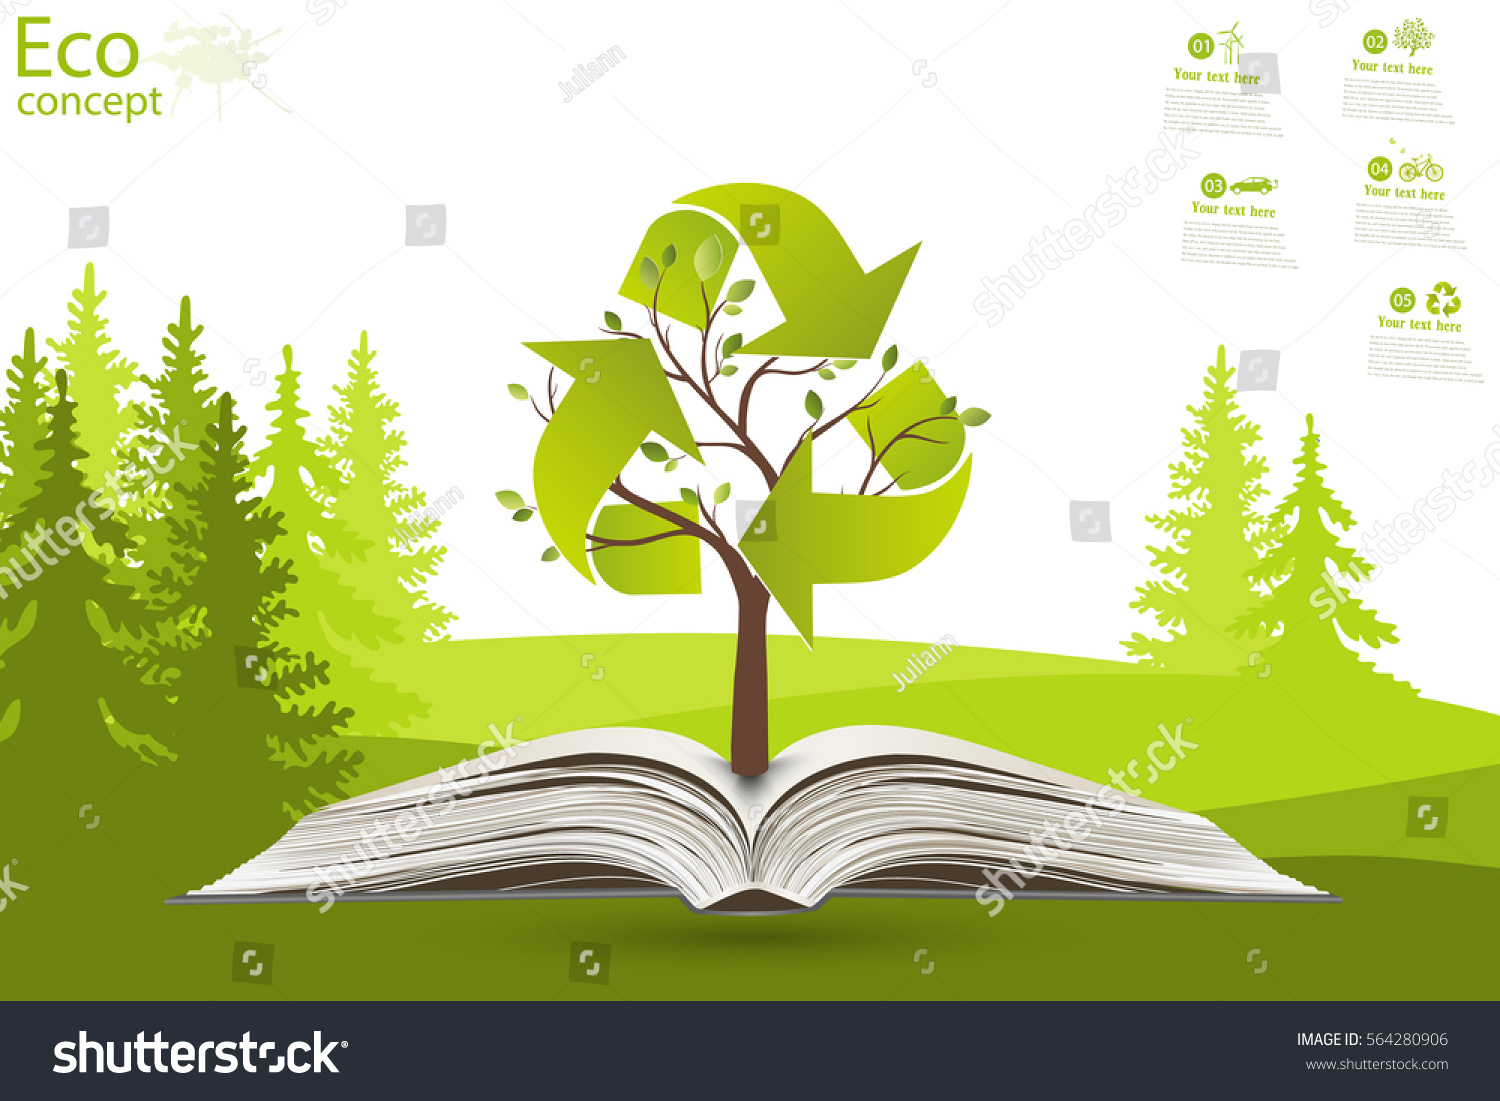 Recycling Symbol On Tree Green Paper Stock Vector Royalty Free